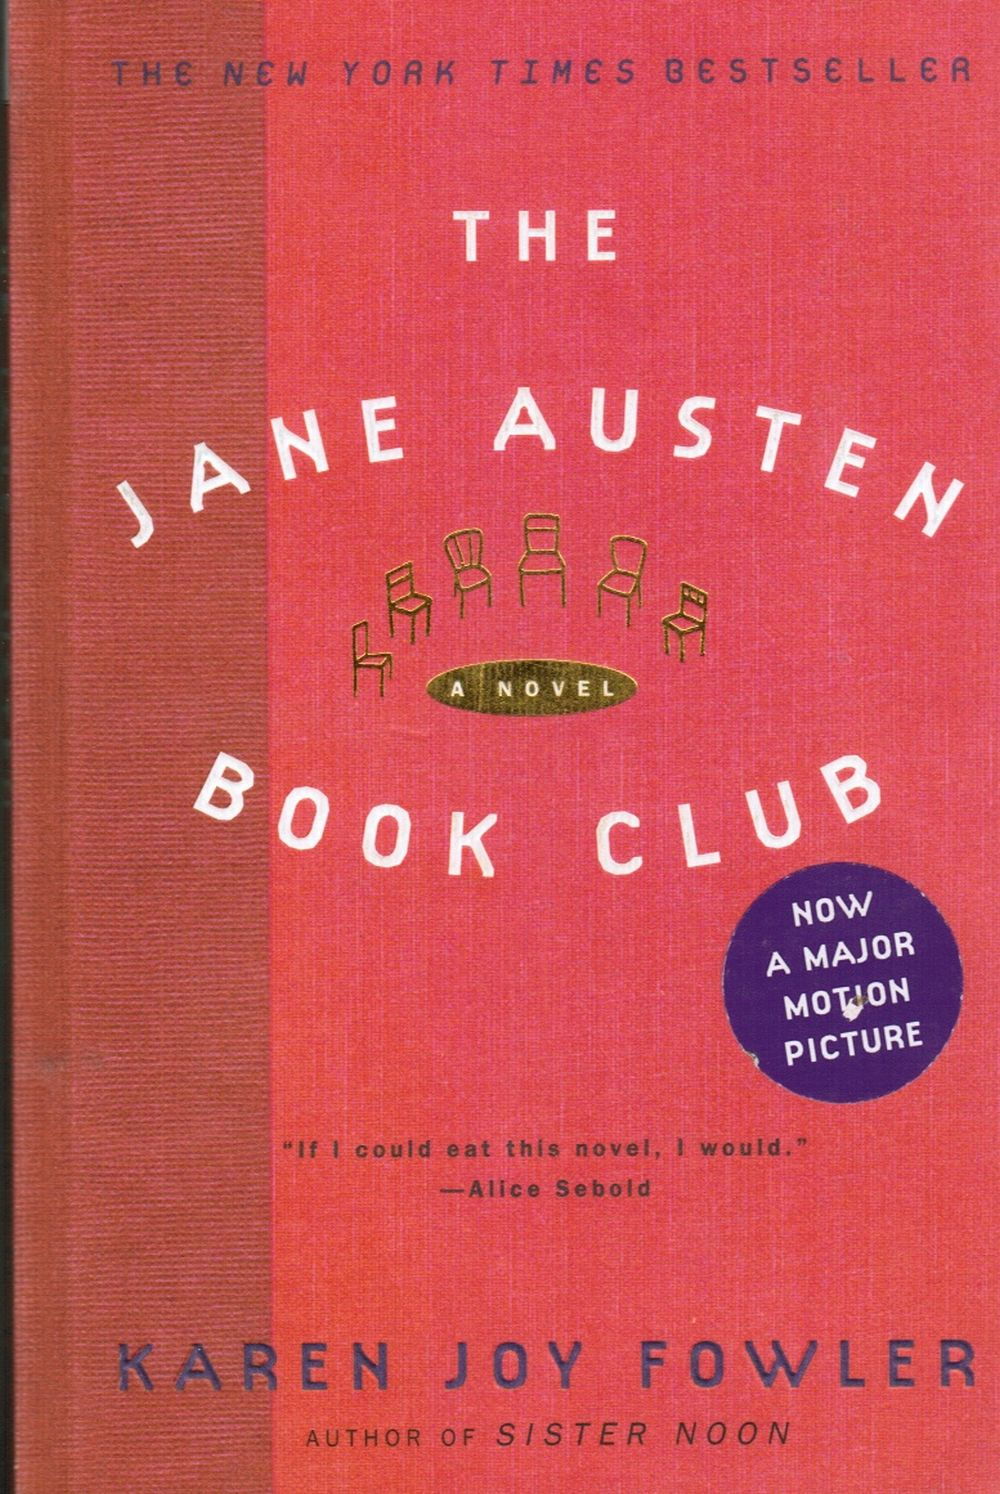 Image for The Jane Austen Book Club - a Novel